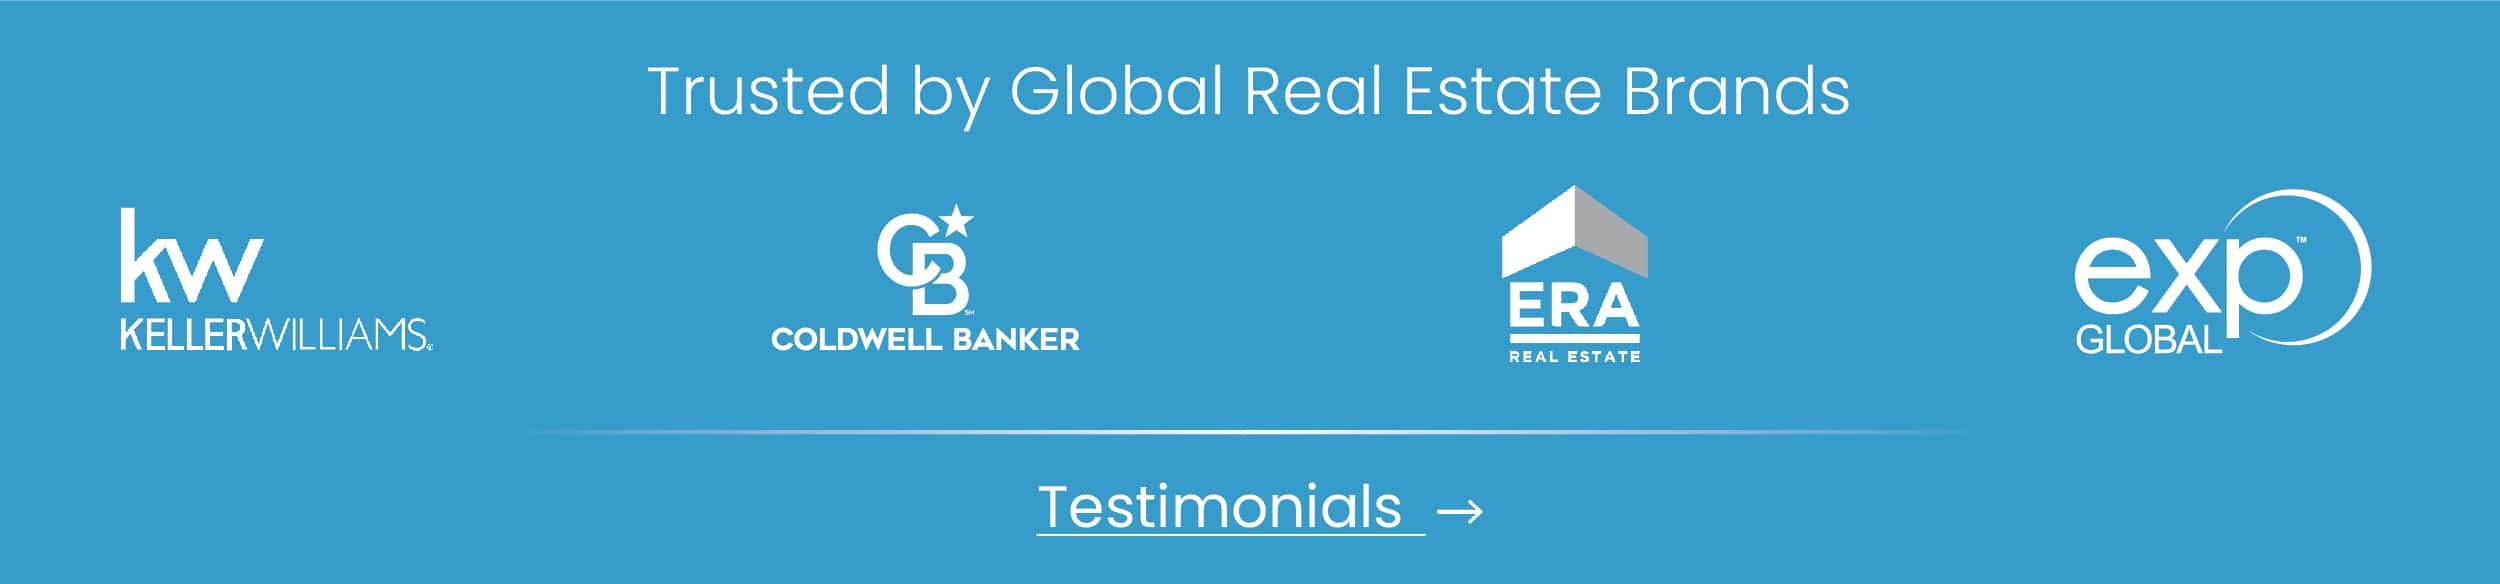 Trusted by global real estate brands